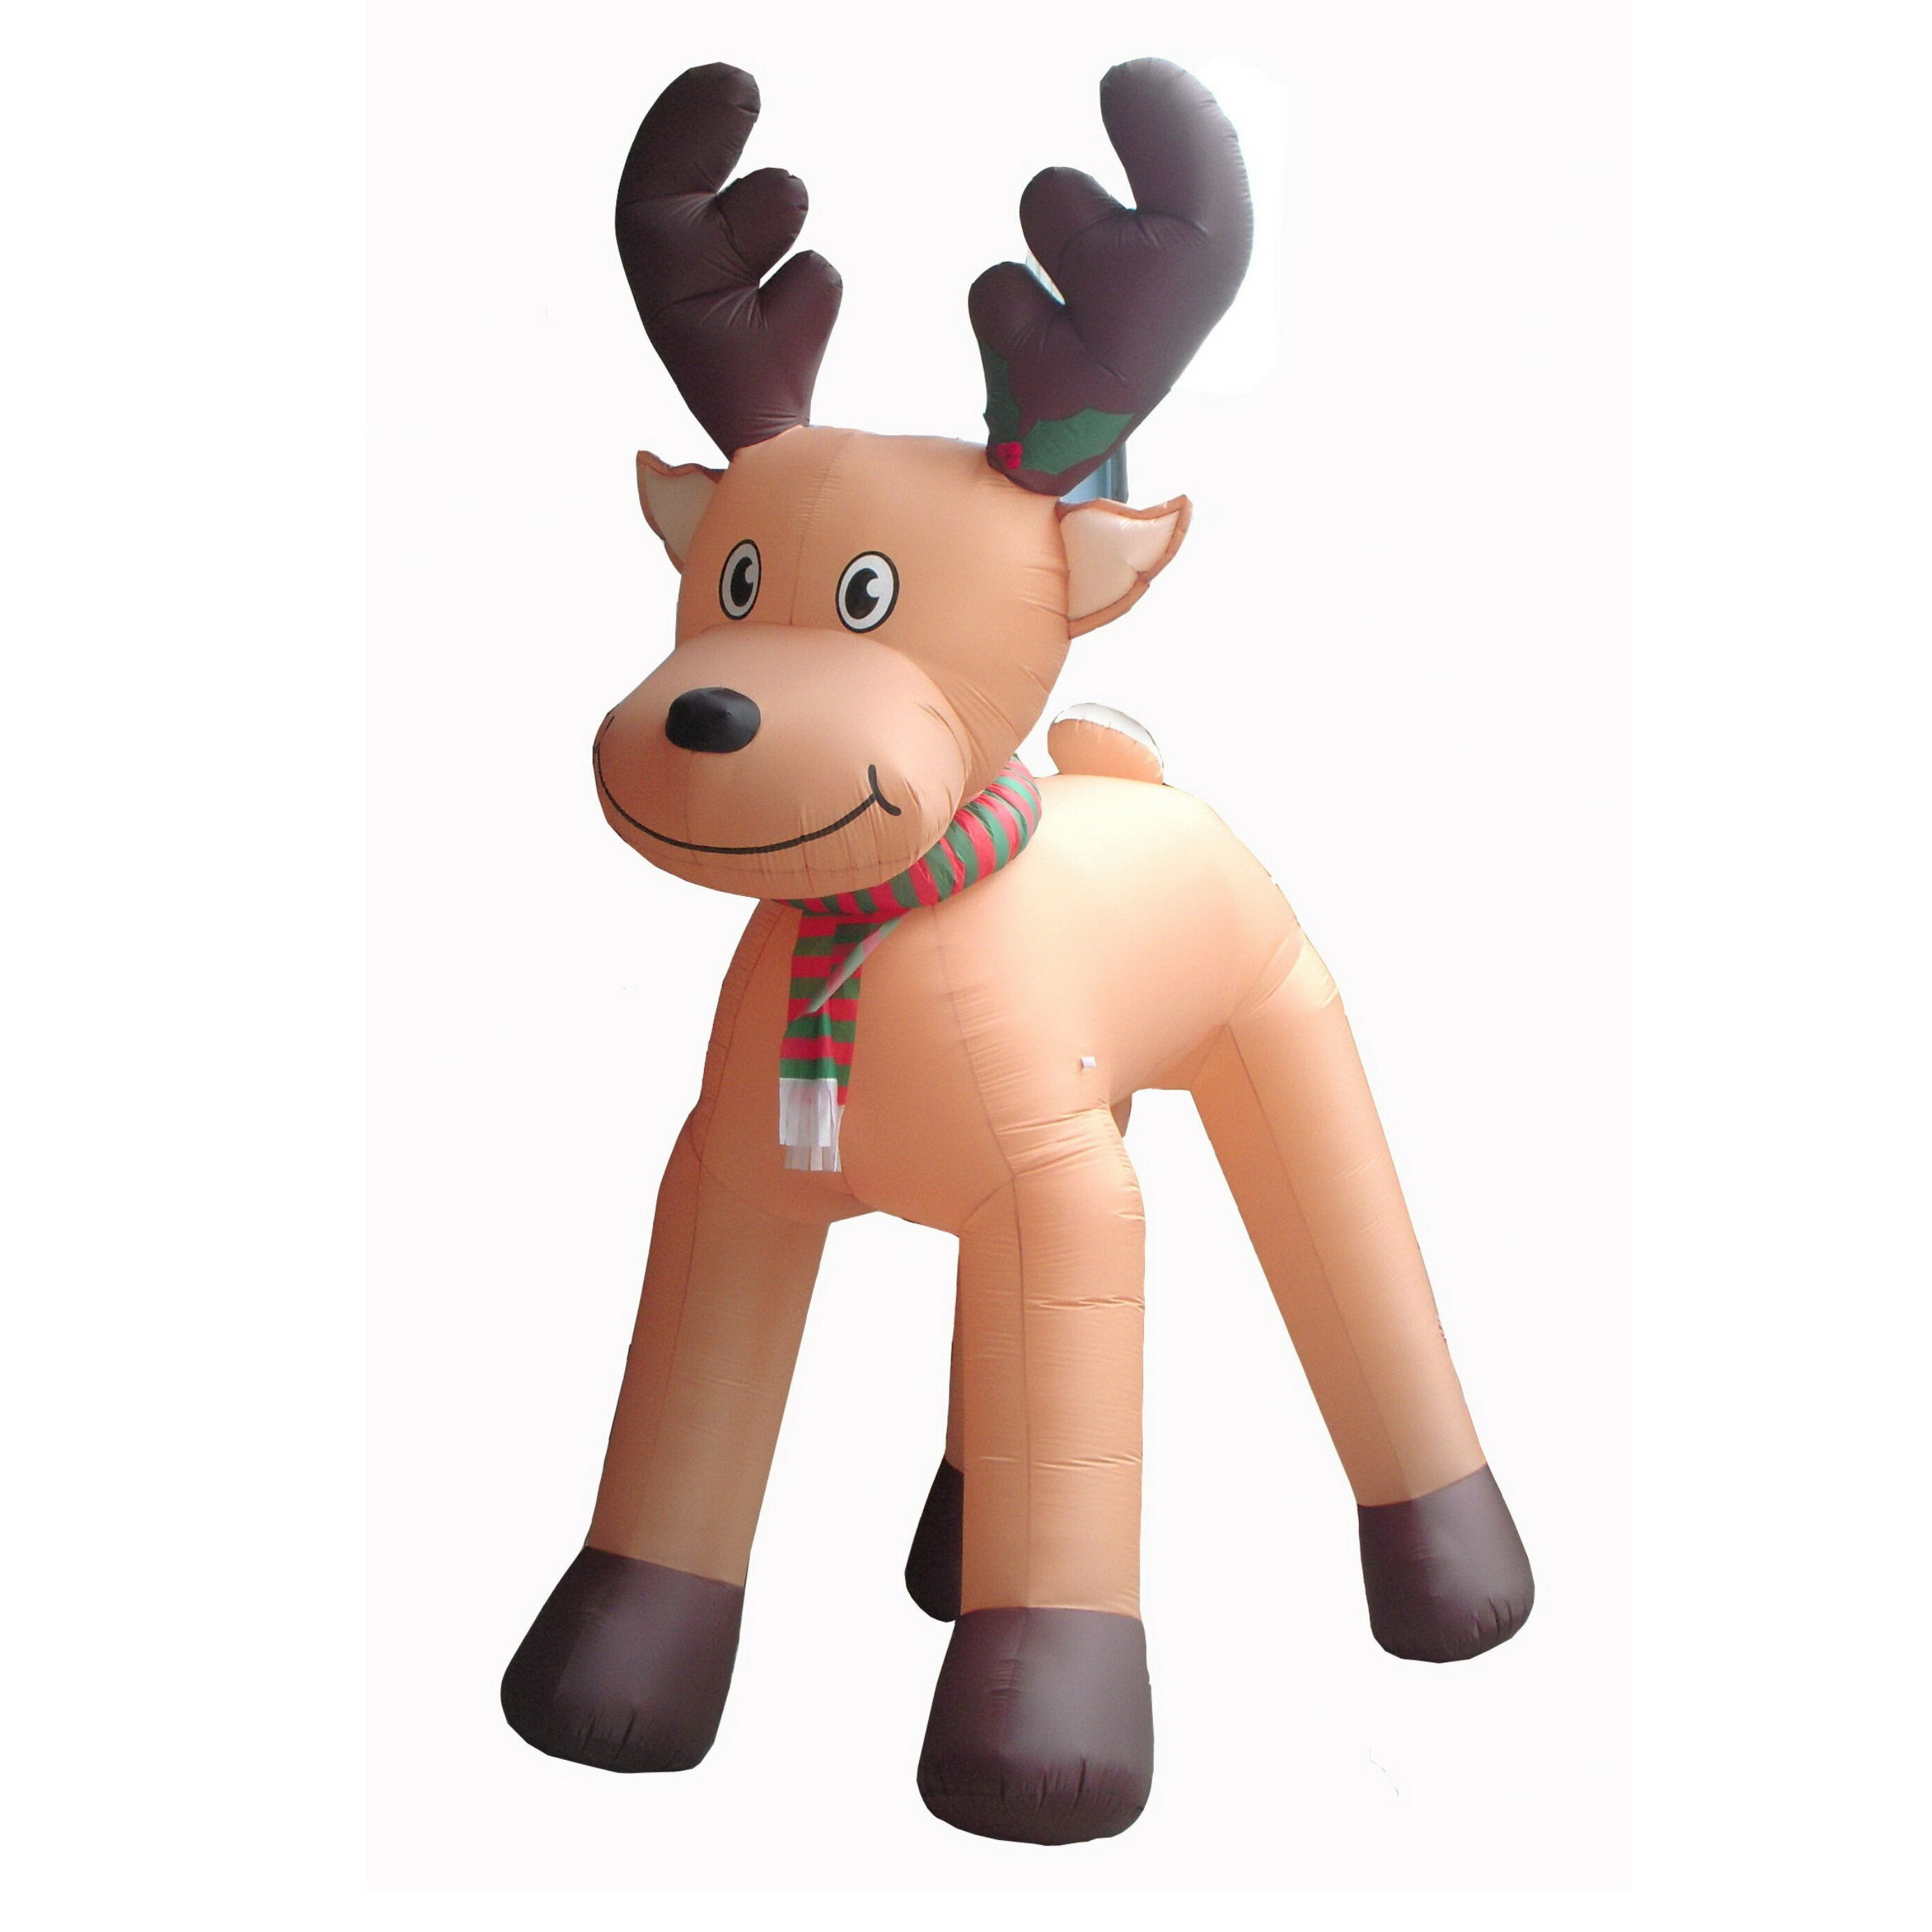 Deer bathroom decor - Bzb Goods Christmas Inflatables Animated Reindeer